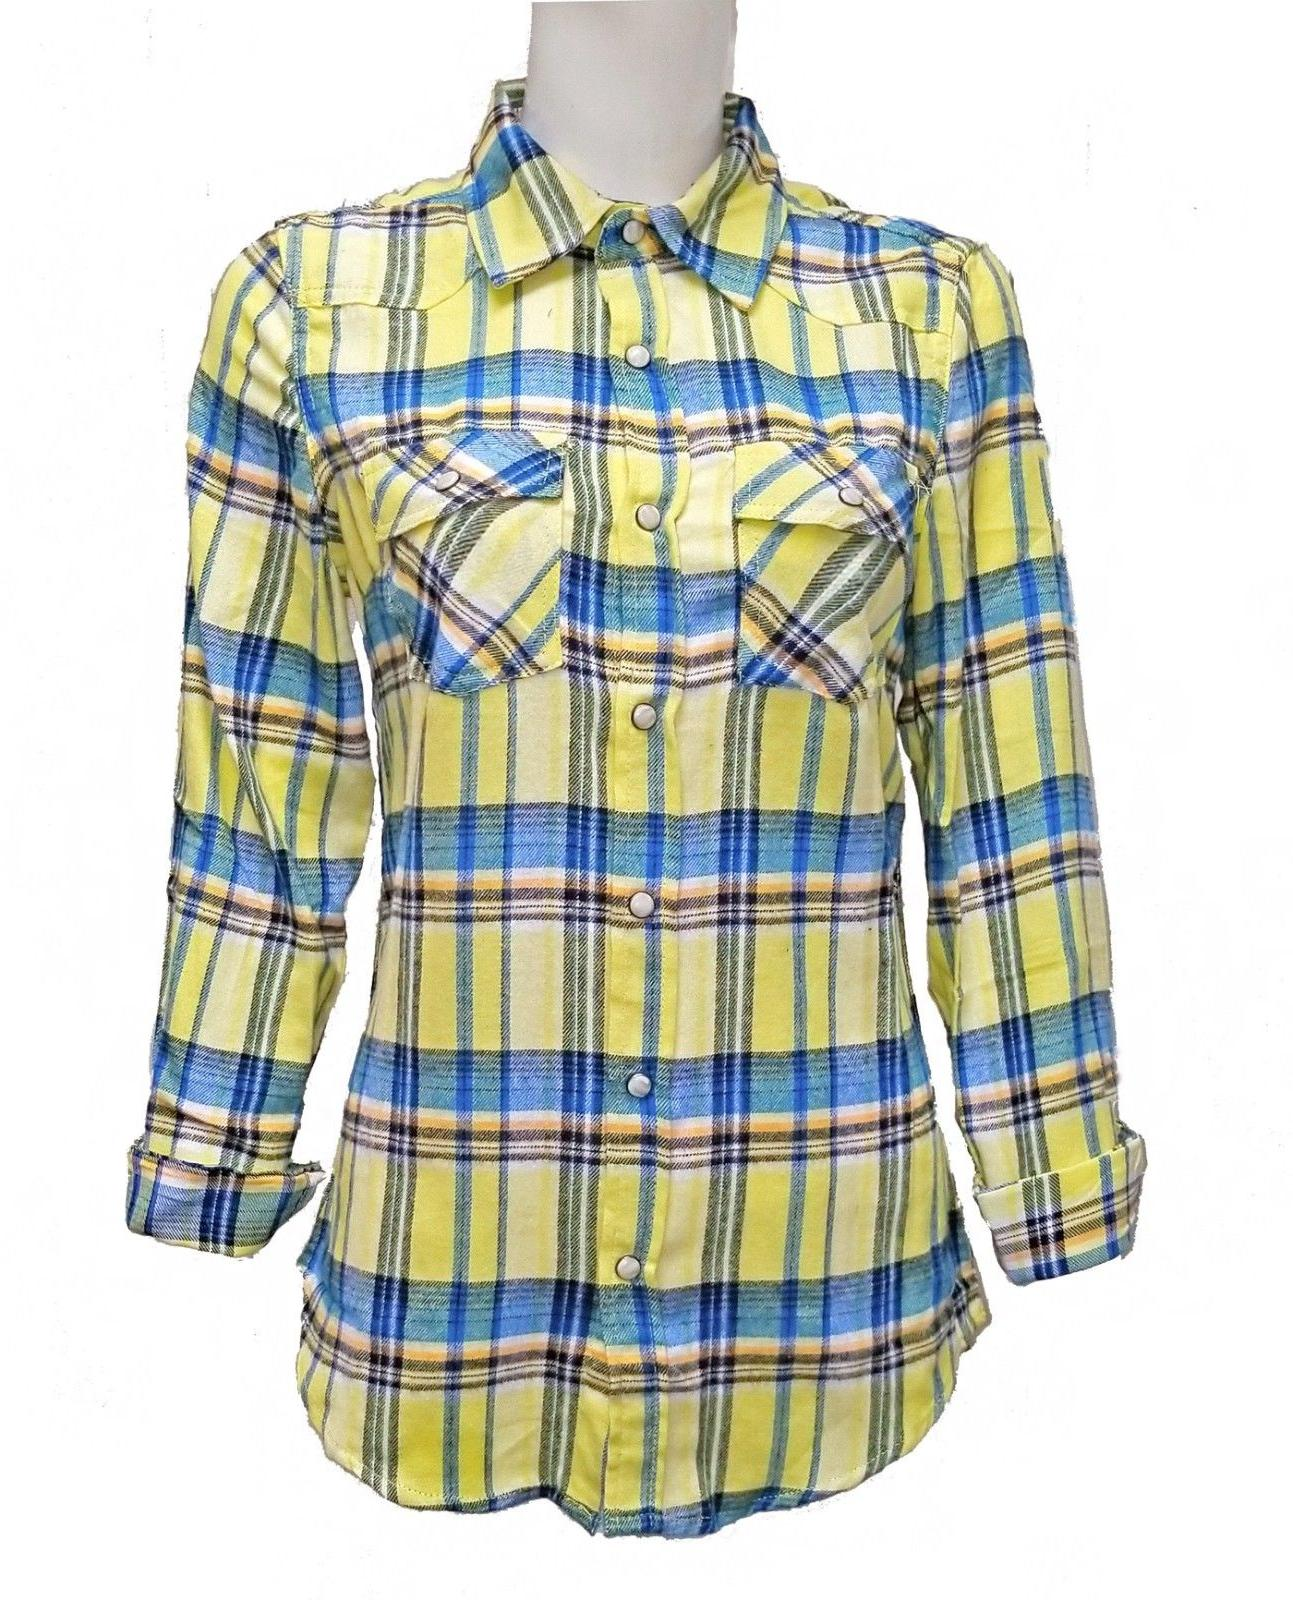 Inso Women's Flannel Checkered Long Button